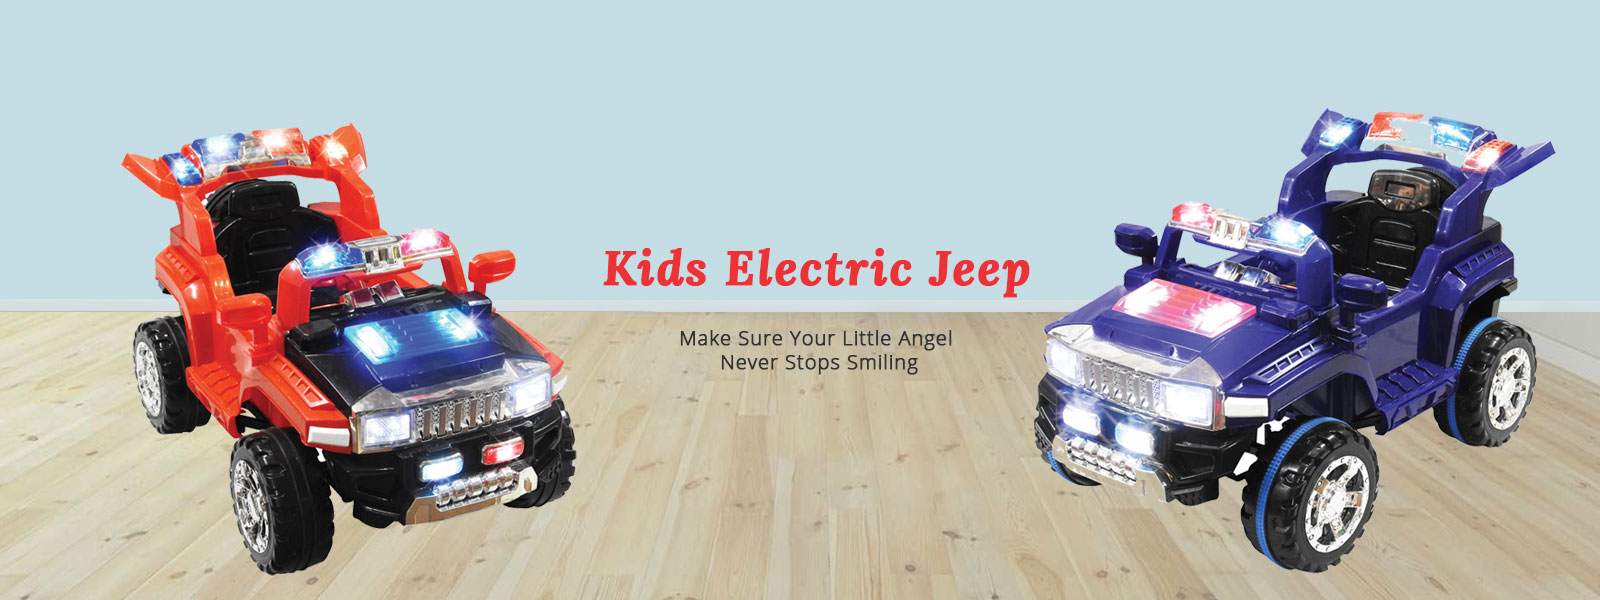 Kids Electric Jeep Manufacturers in Raipur